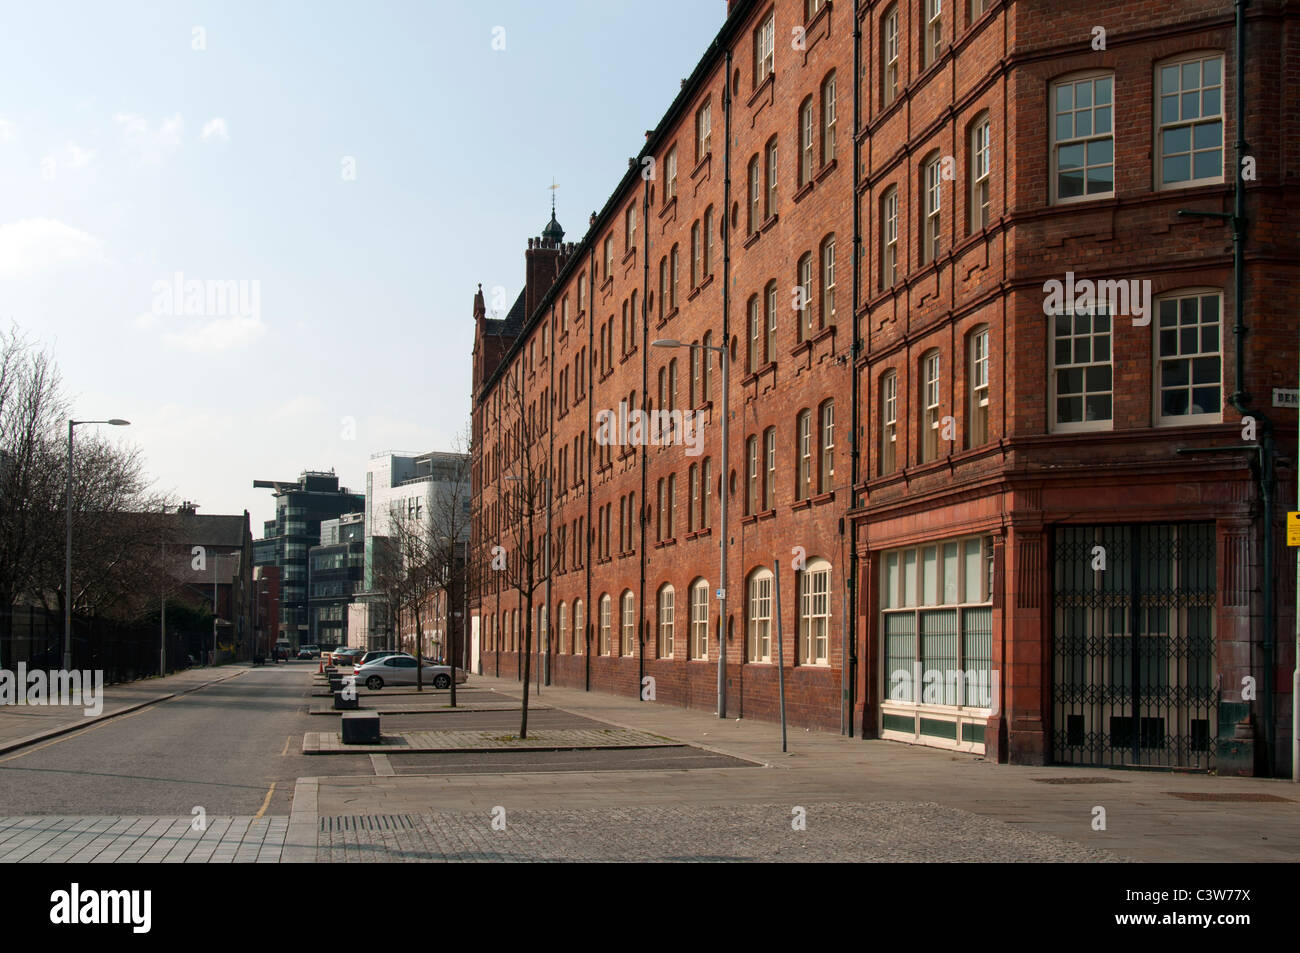 Victoria Square, Ancoats Urban Village, Northern Quarter, Manchester, England, UK. - Stock Image